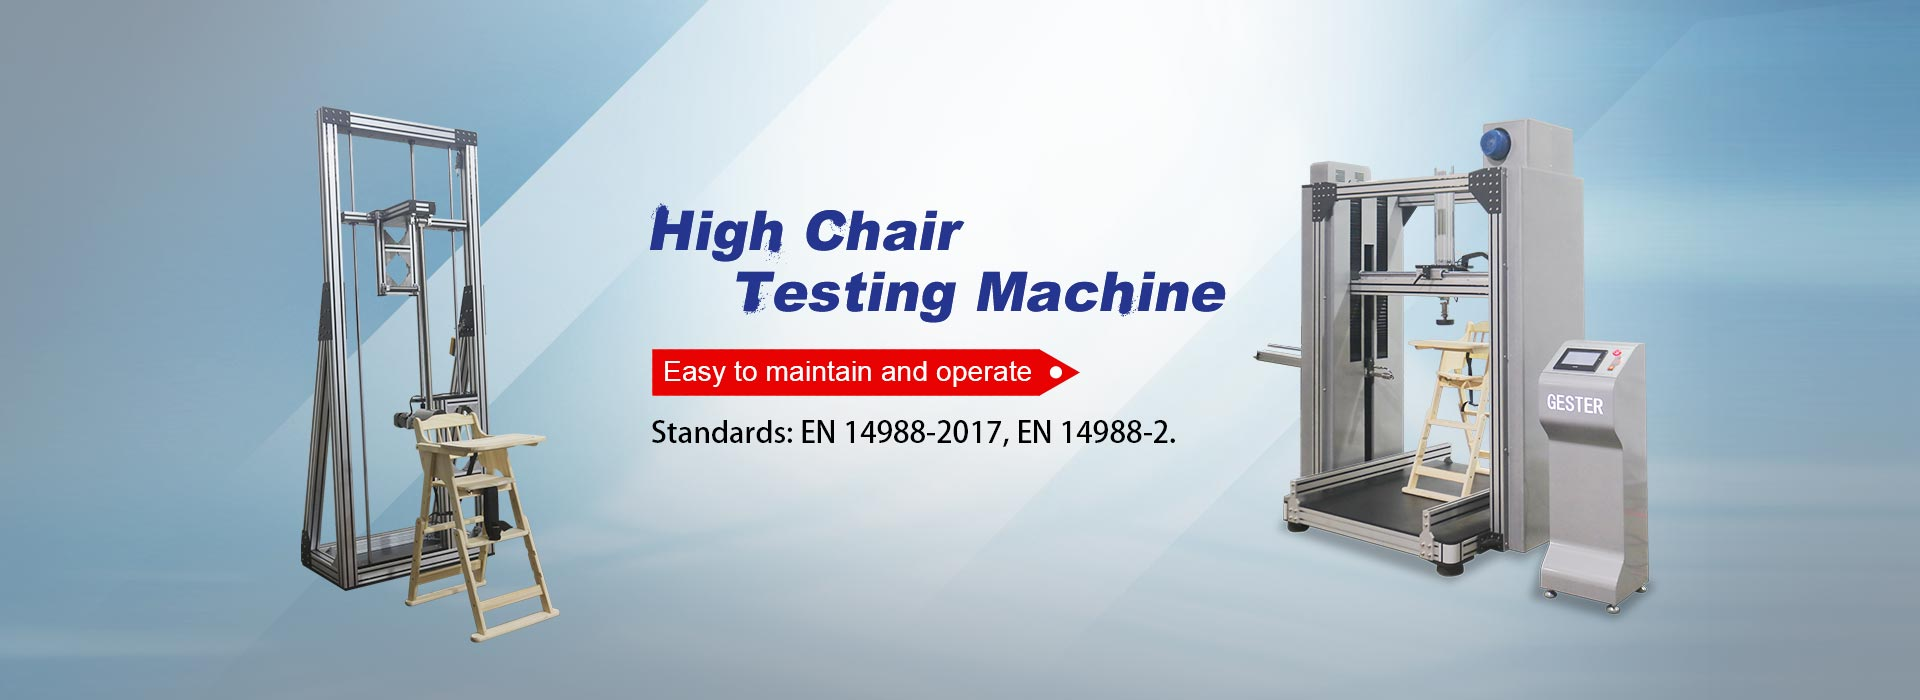 High Chair Testing Machine